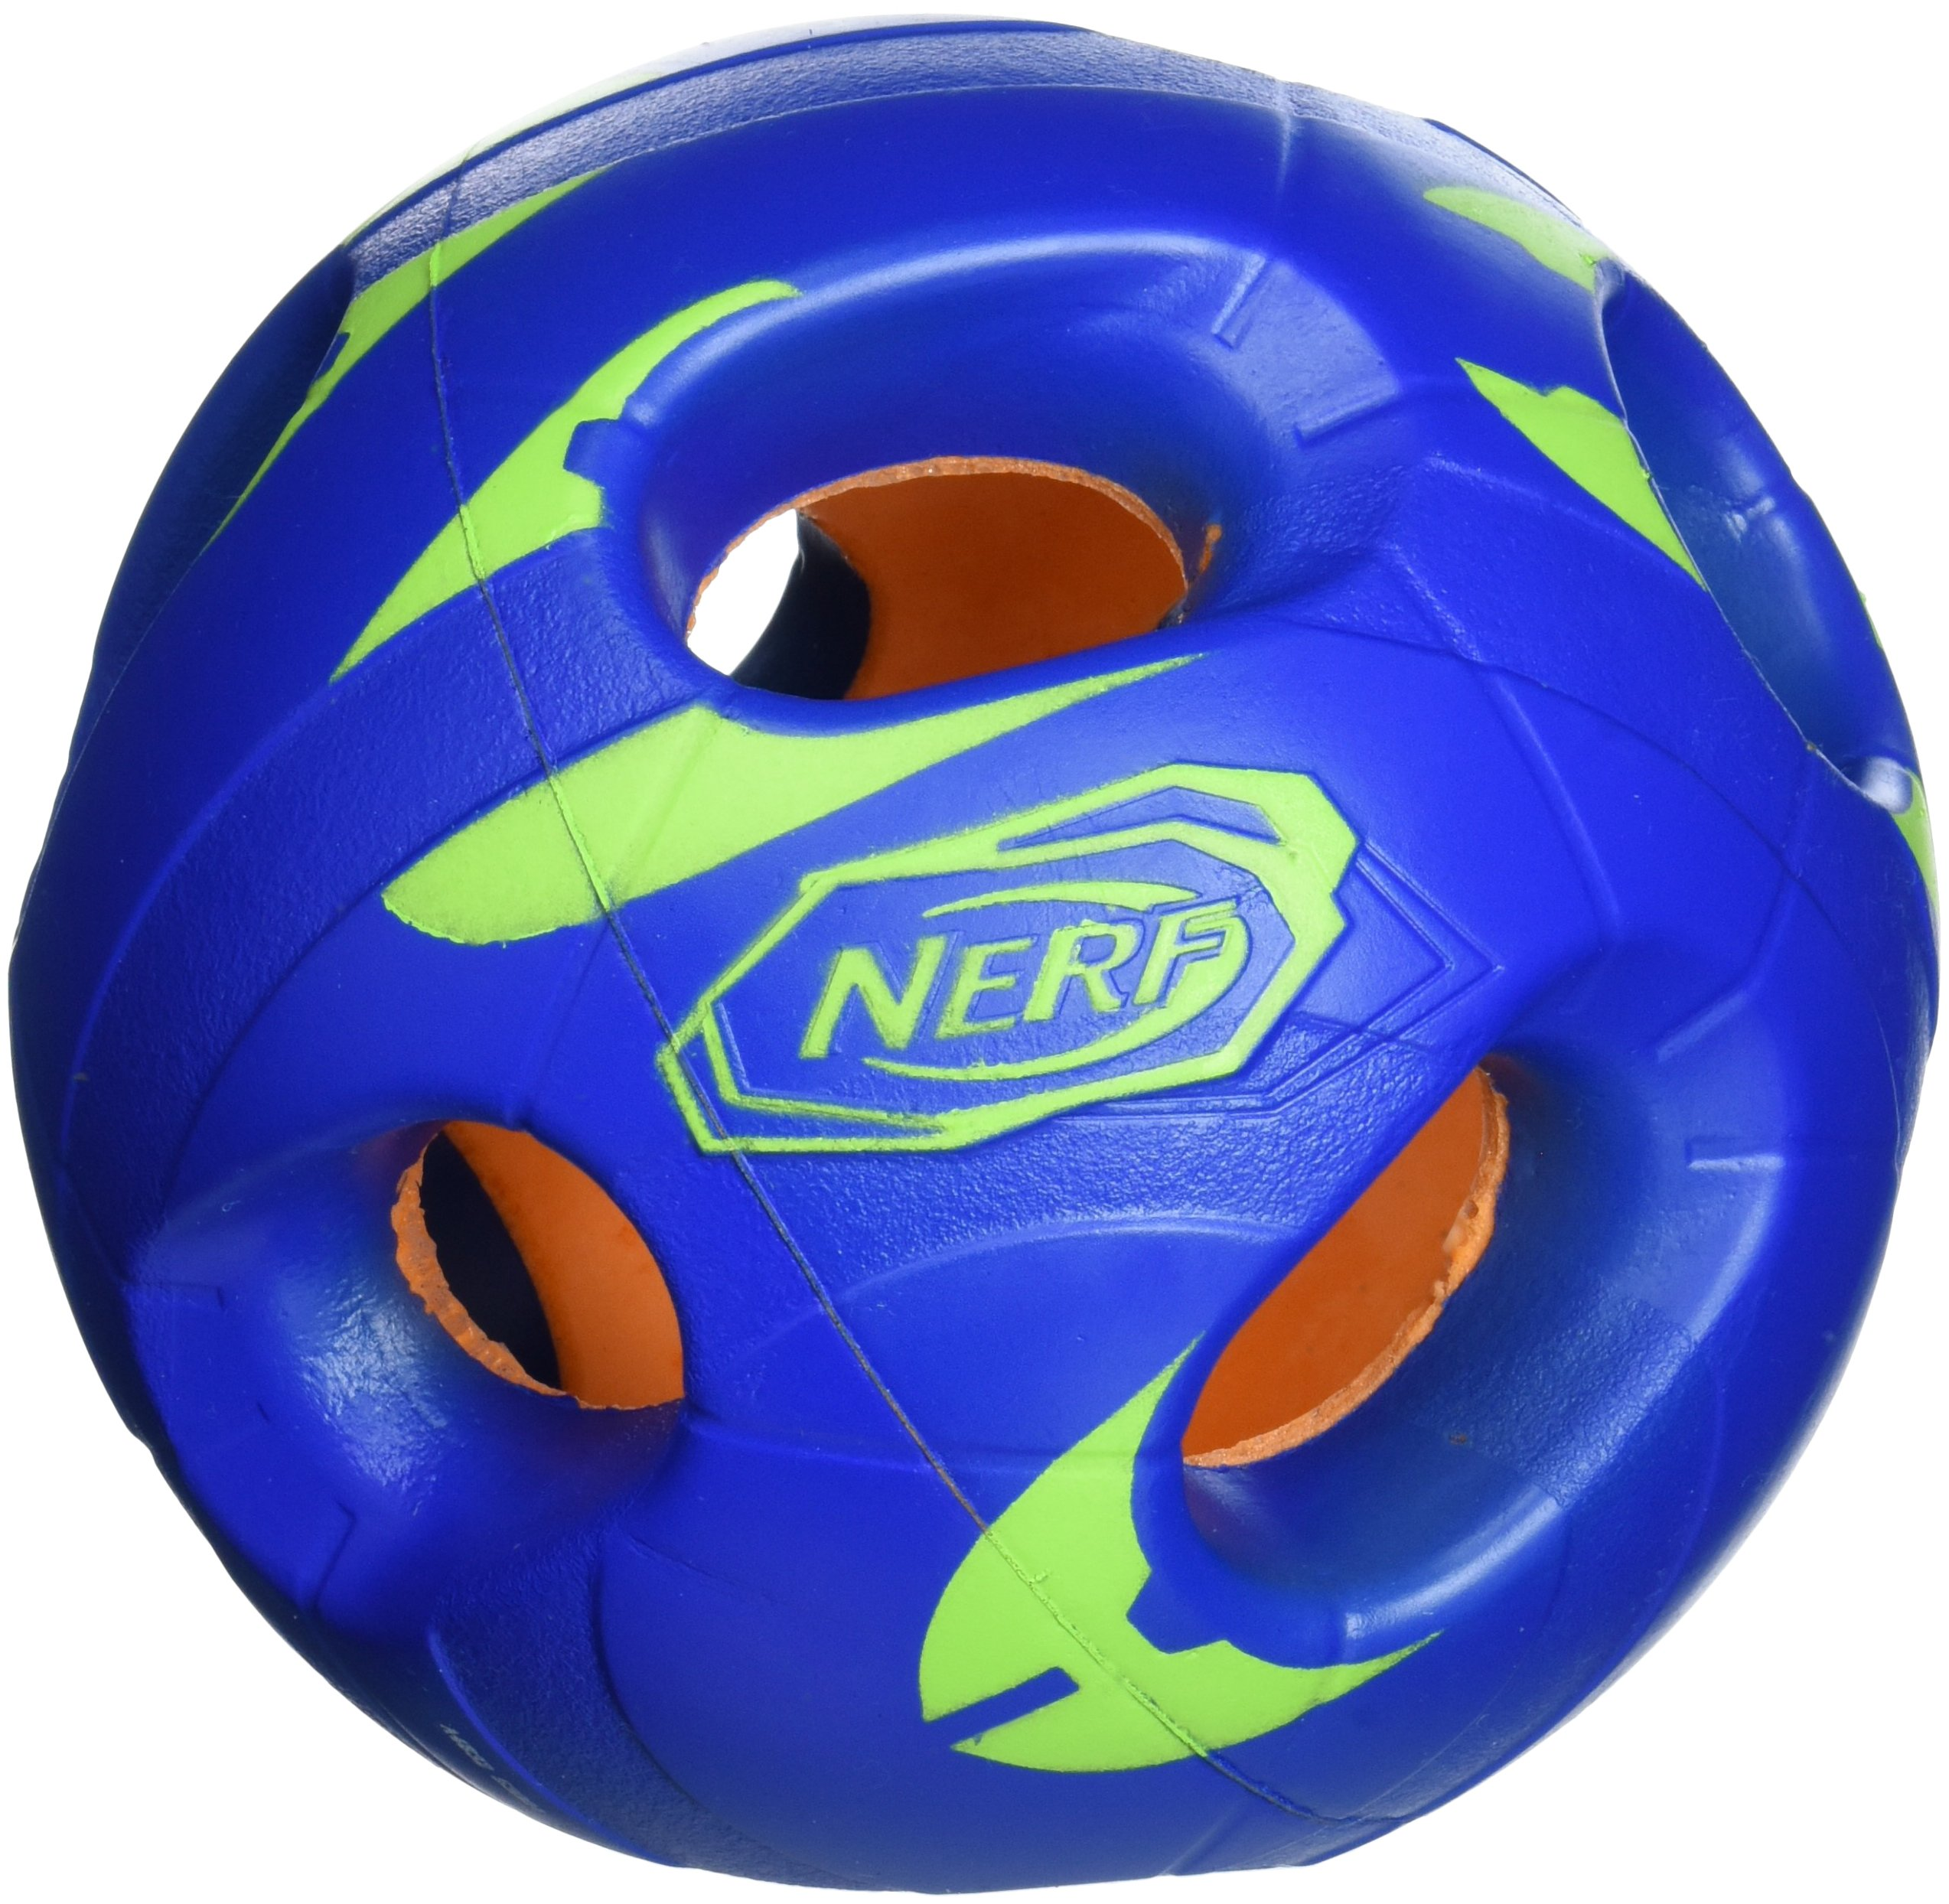 Nerf Sports Bash Ball, Blue